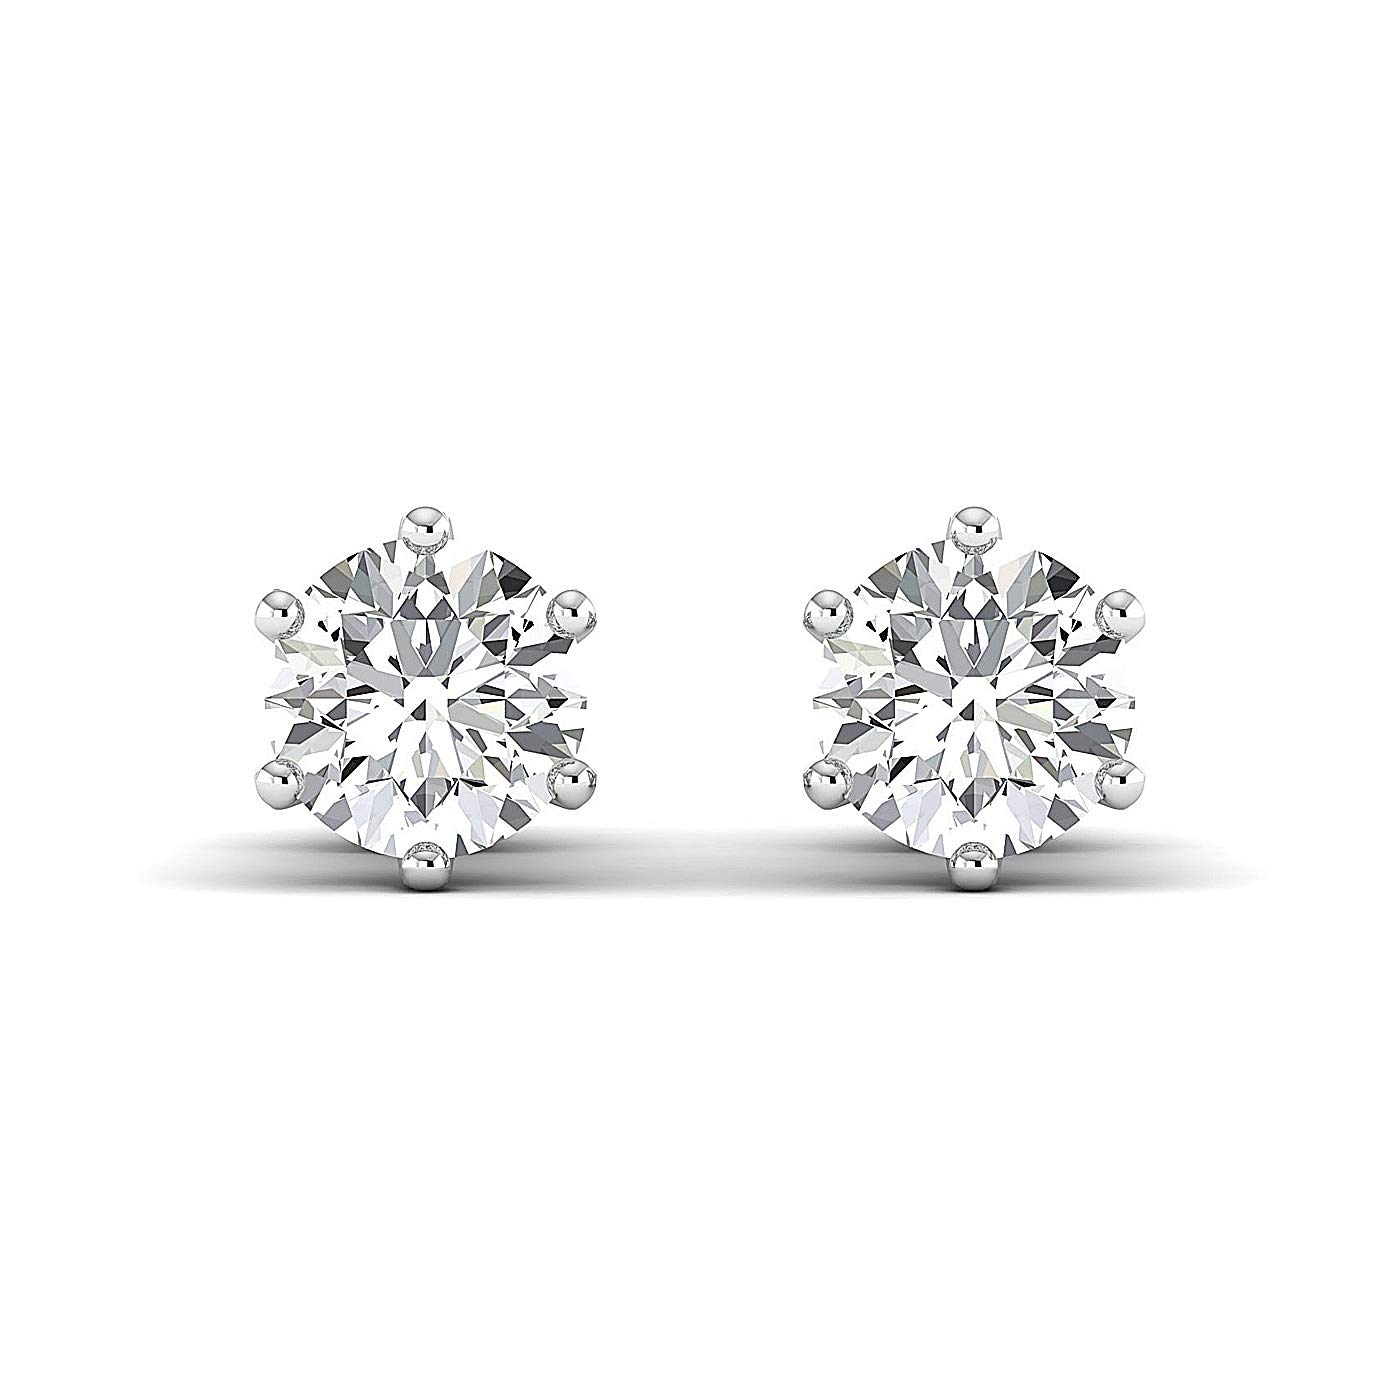 GH//VVS Stud Earrings for Women perfect Jewelry Gifts for Women Teen Girls Round Brilliant Earring Studs 0.3 to 4 Carat Moissanite Stud Earrings 18K white-gold